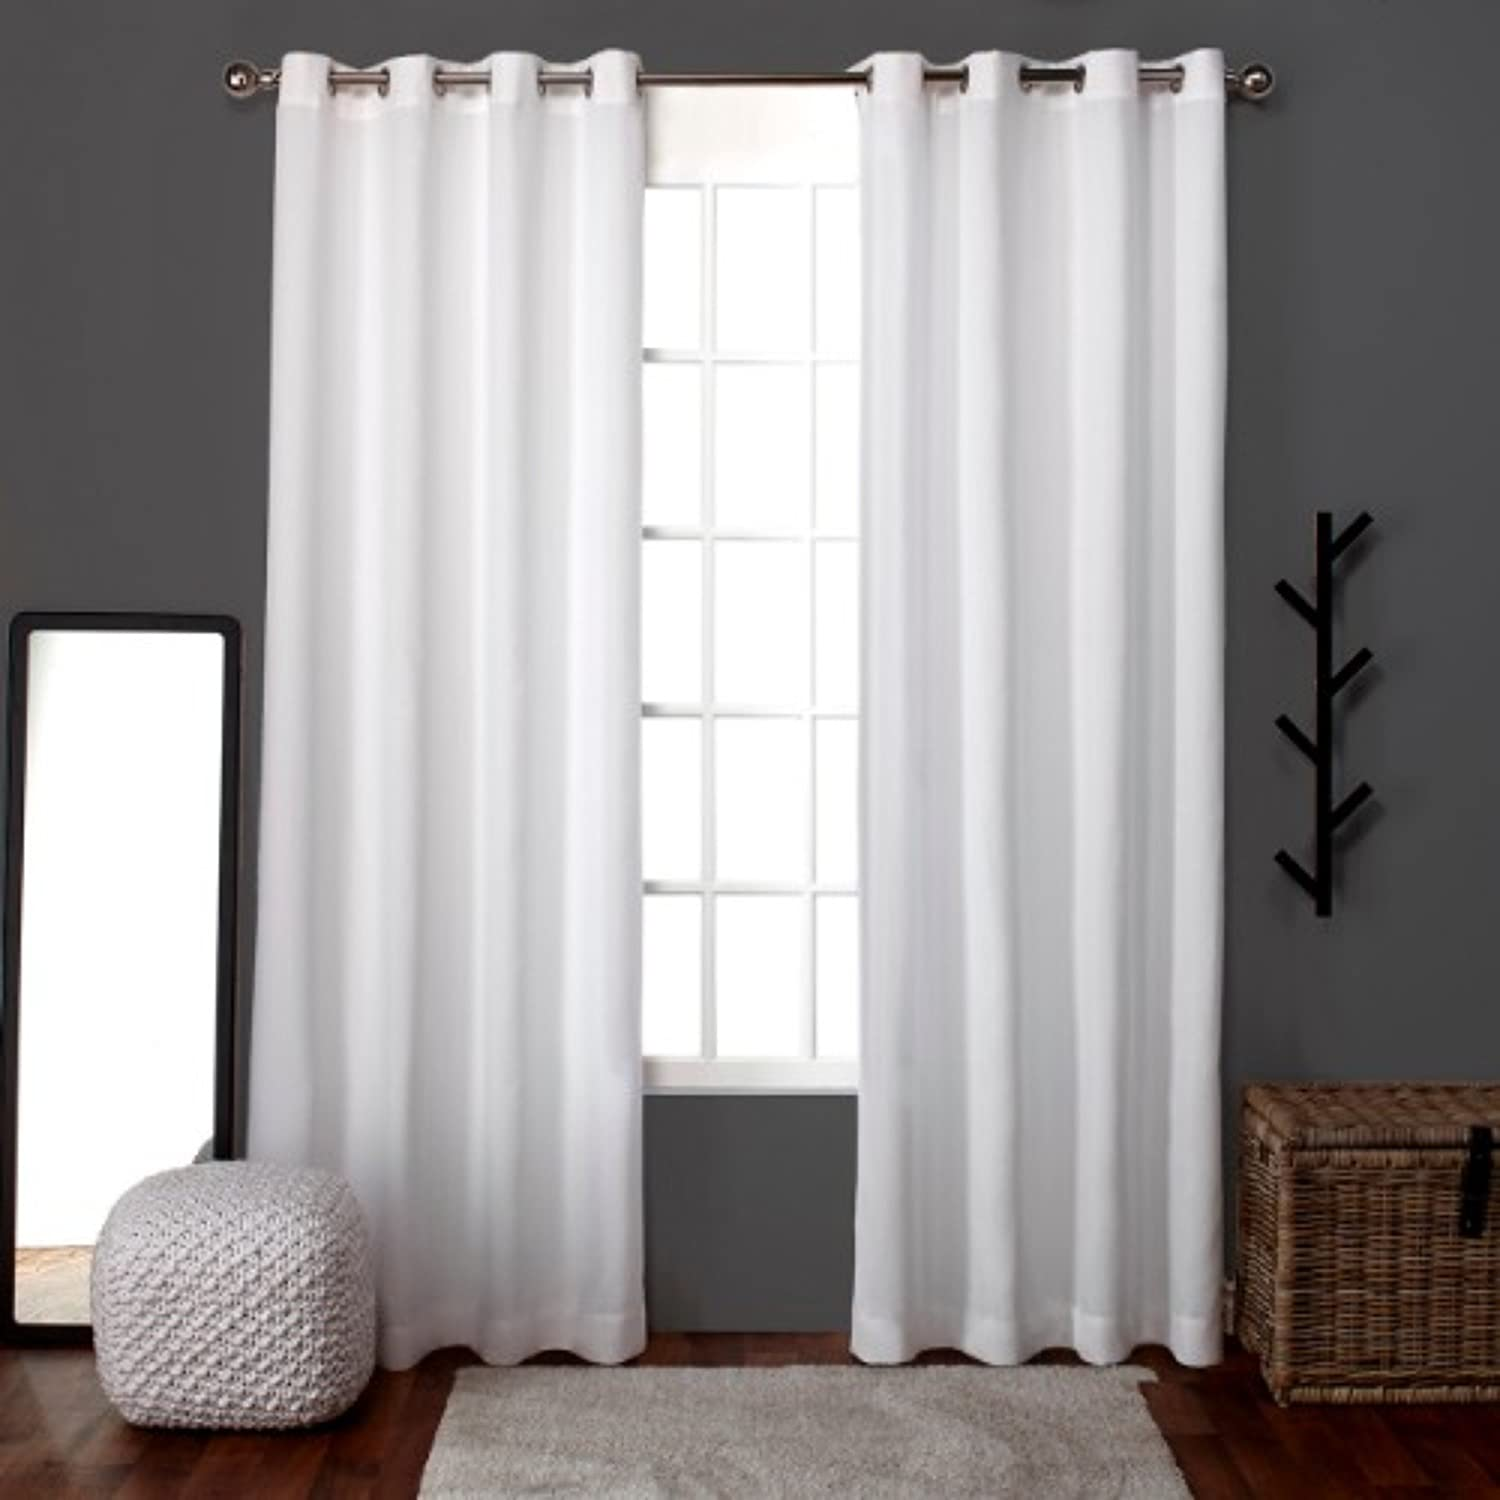 Grommet Curtains- An Ultimate Choice For Grooming Up Your Room